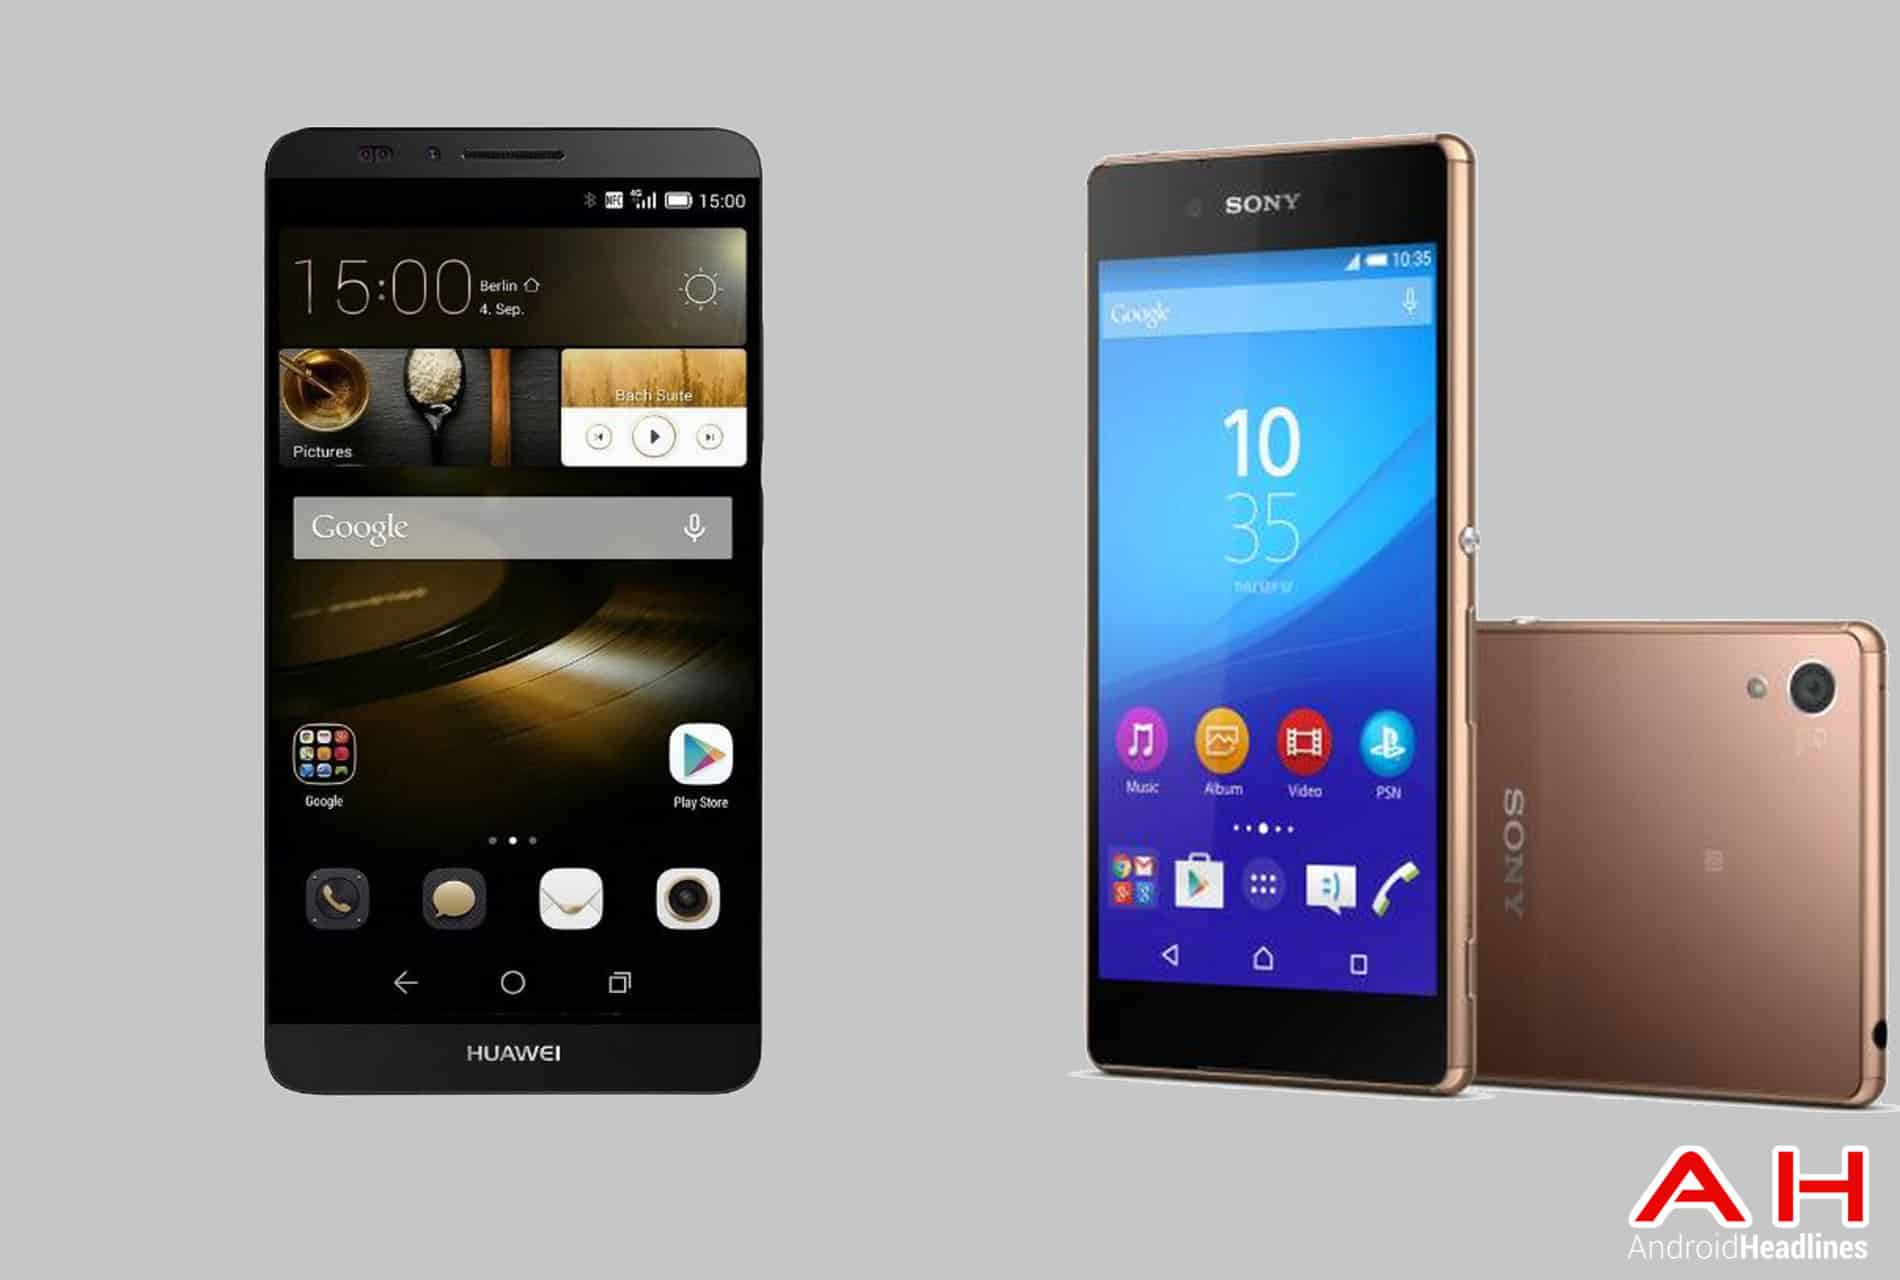 Xperia Z4 vs Ascend Mate 7 cam AH